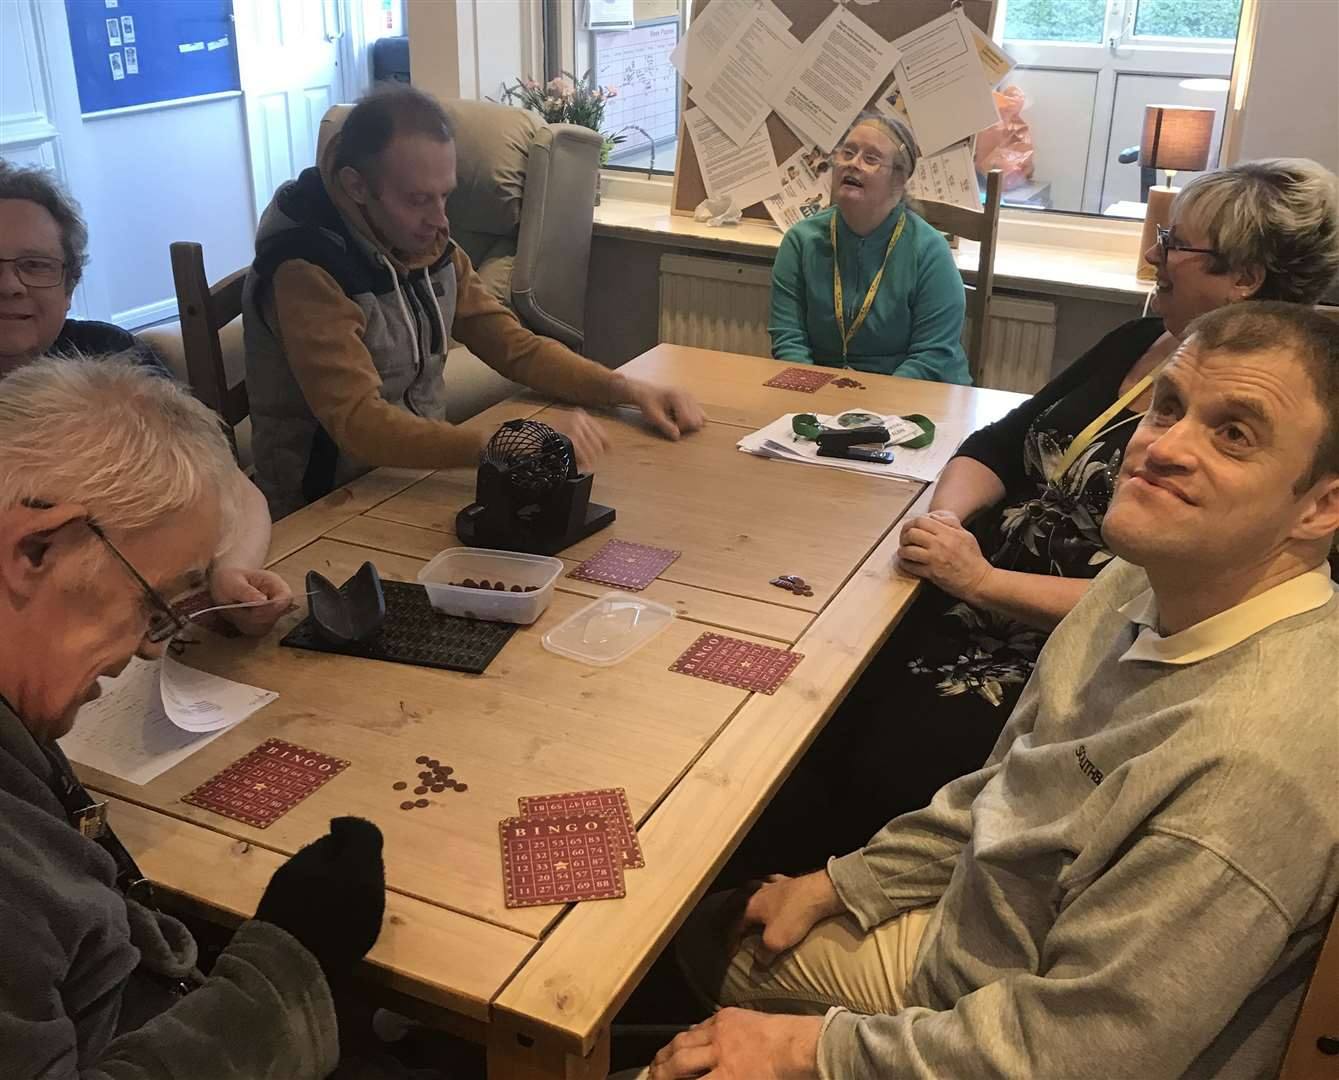 Service users play bingo inside as they adapt to a new routine